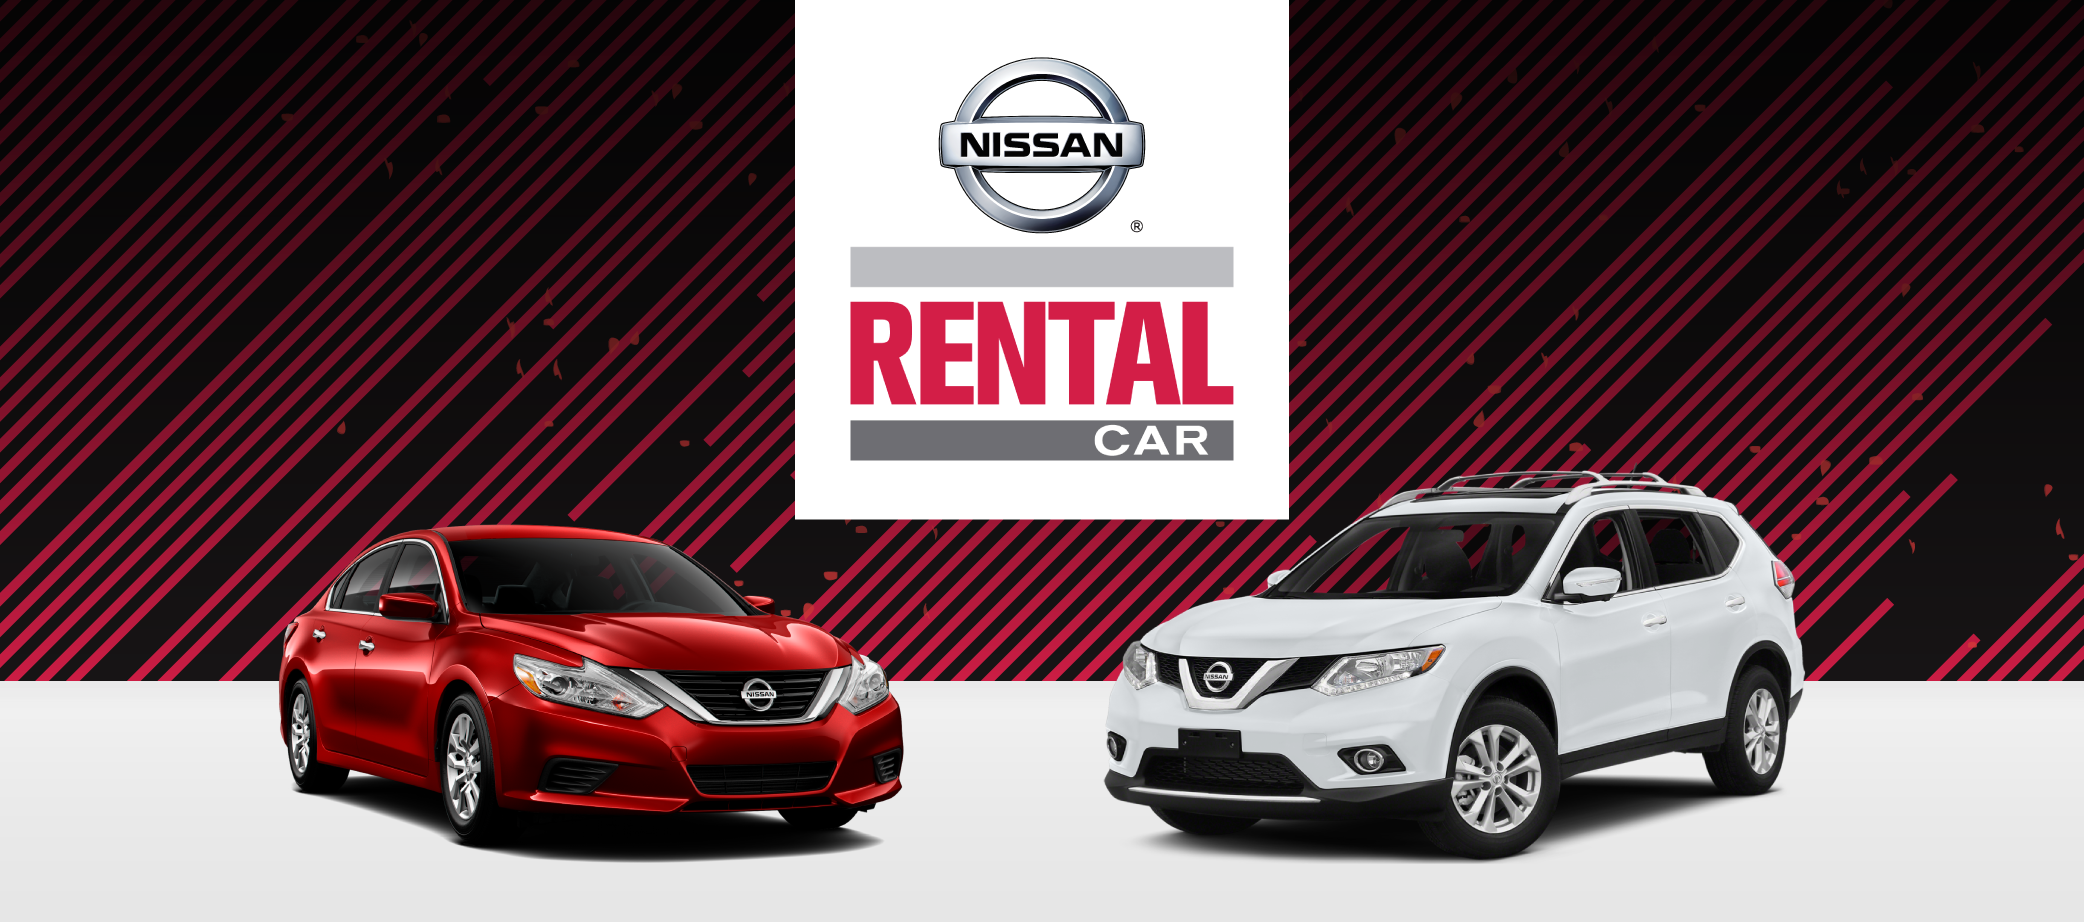 Nissan Rental Cars